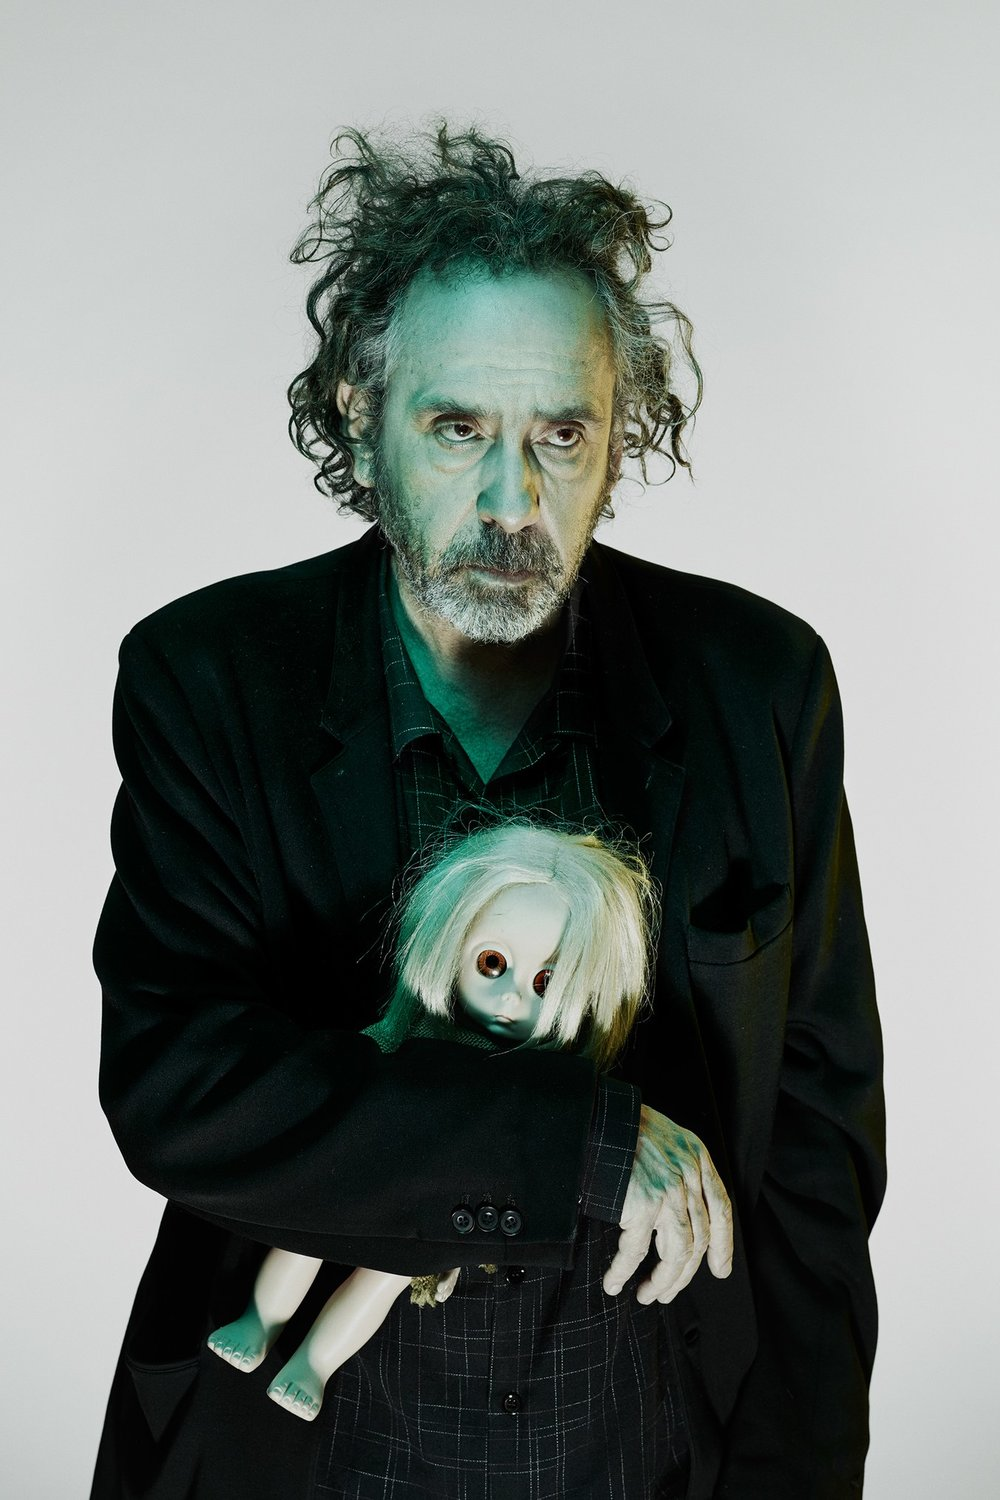 tim-burton-big-eyes-portrait.jpg